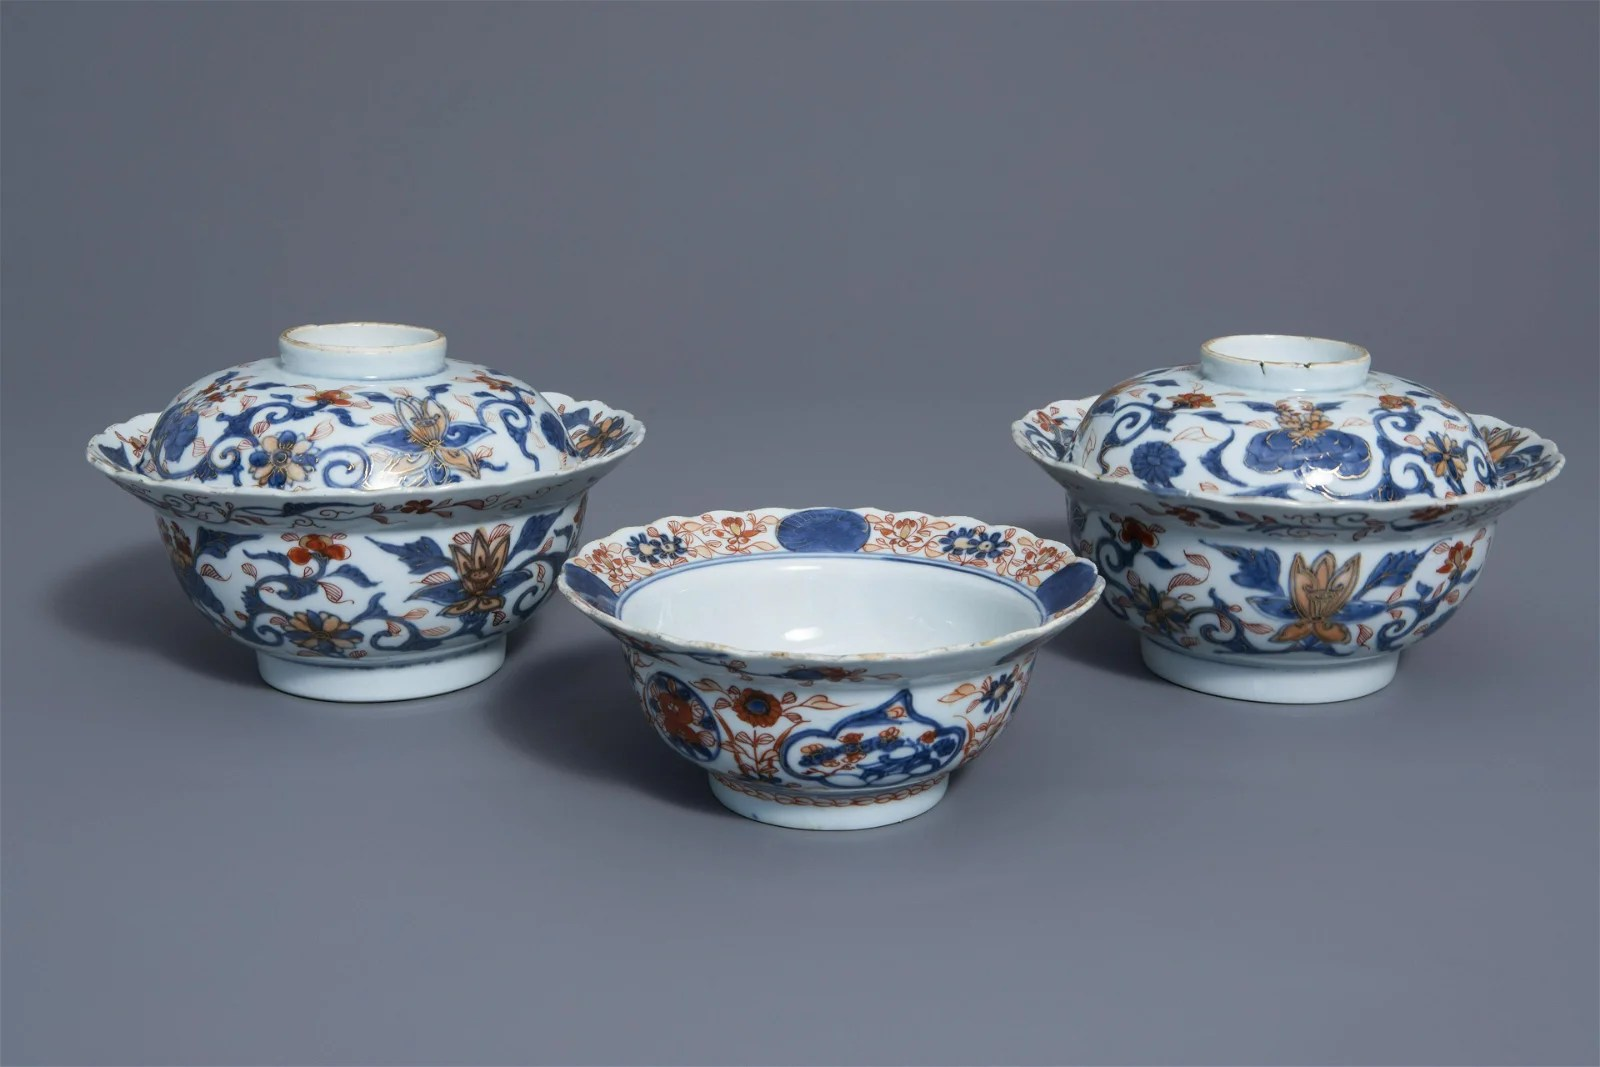 Three Chinese Imari style bowls with floral design,